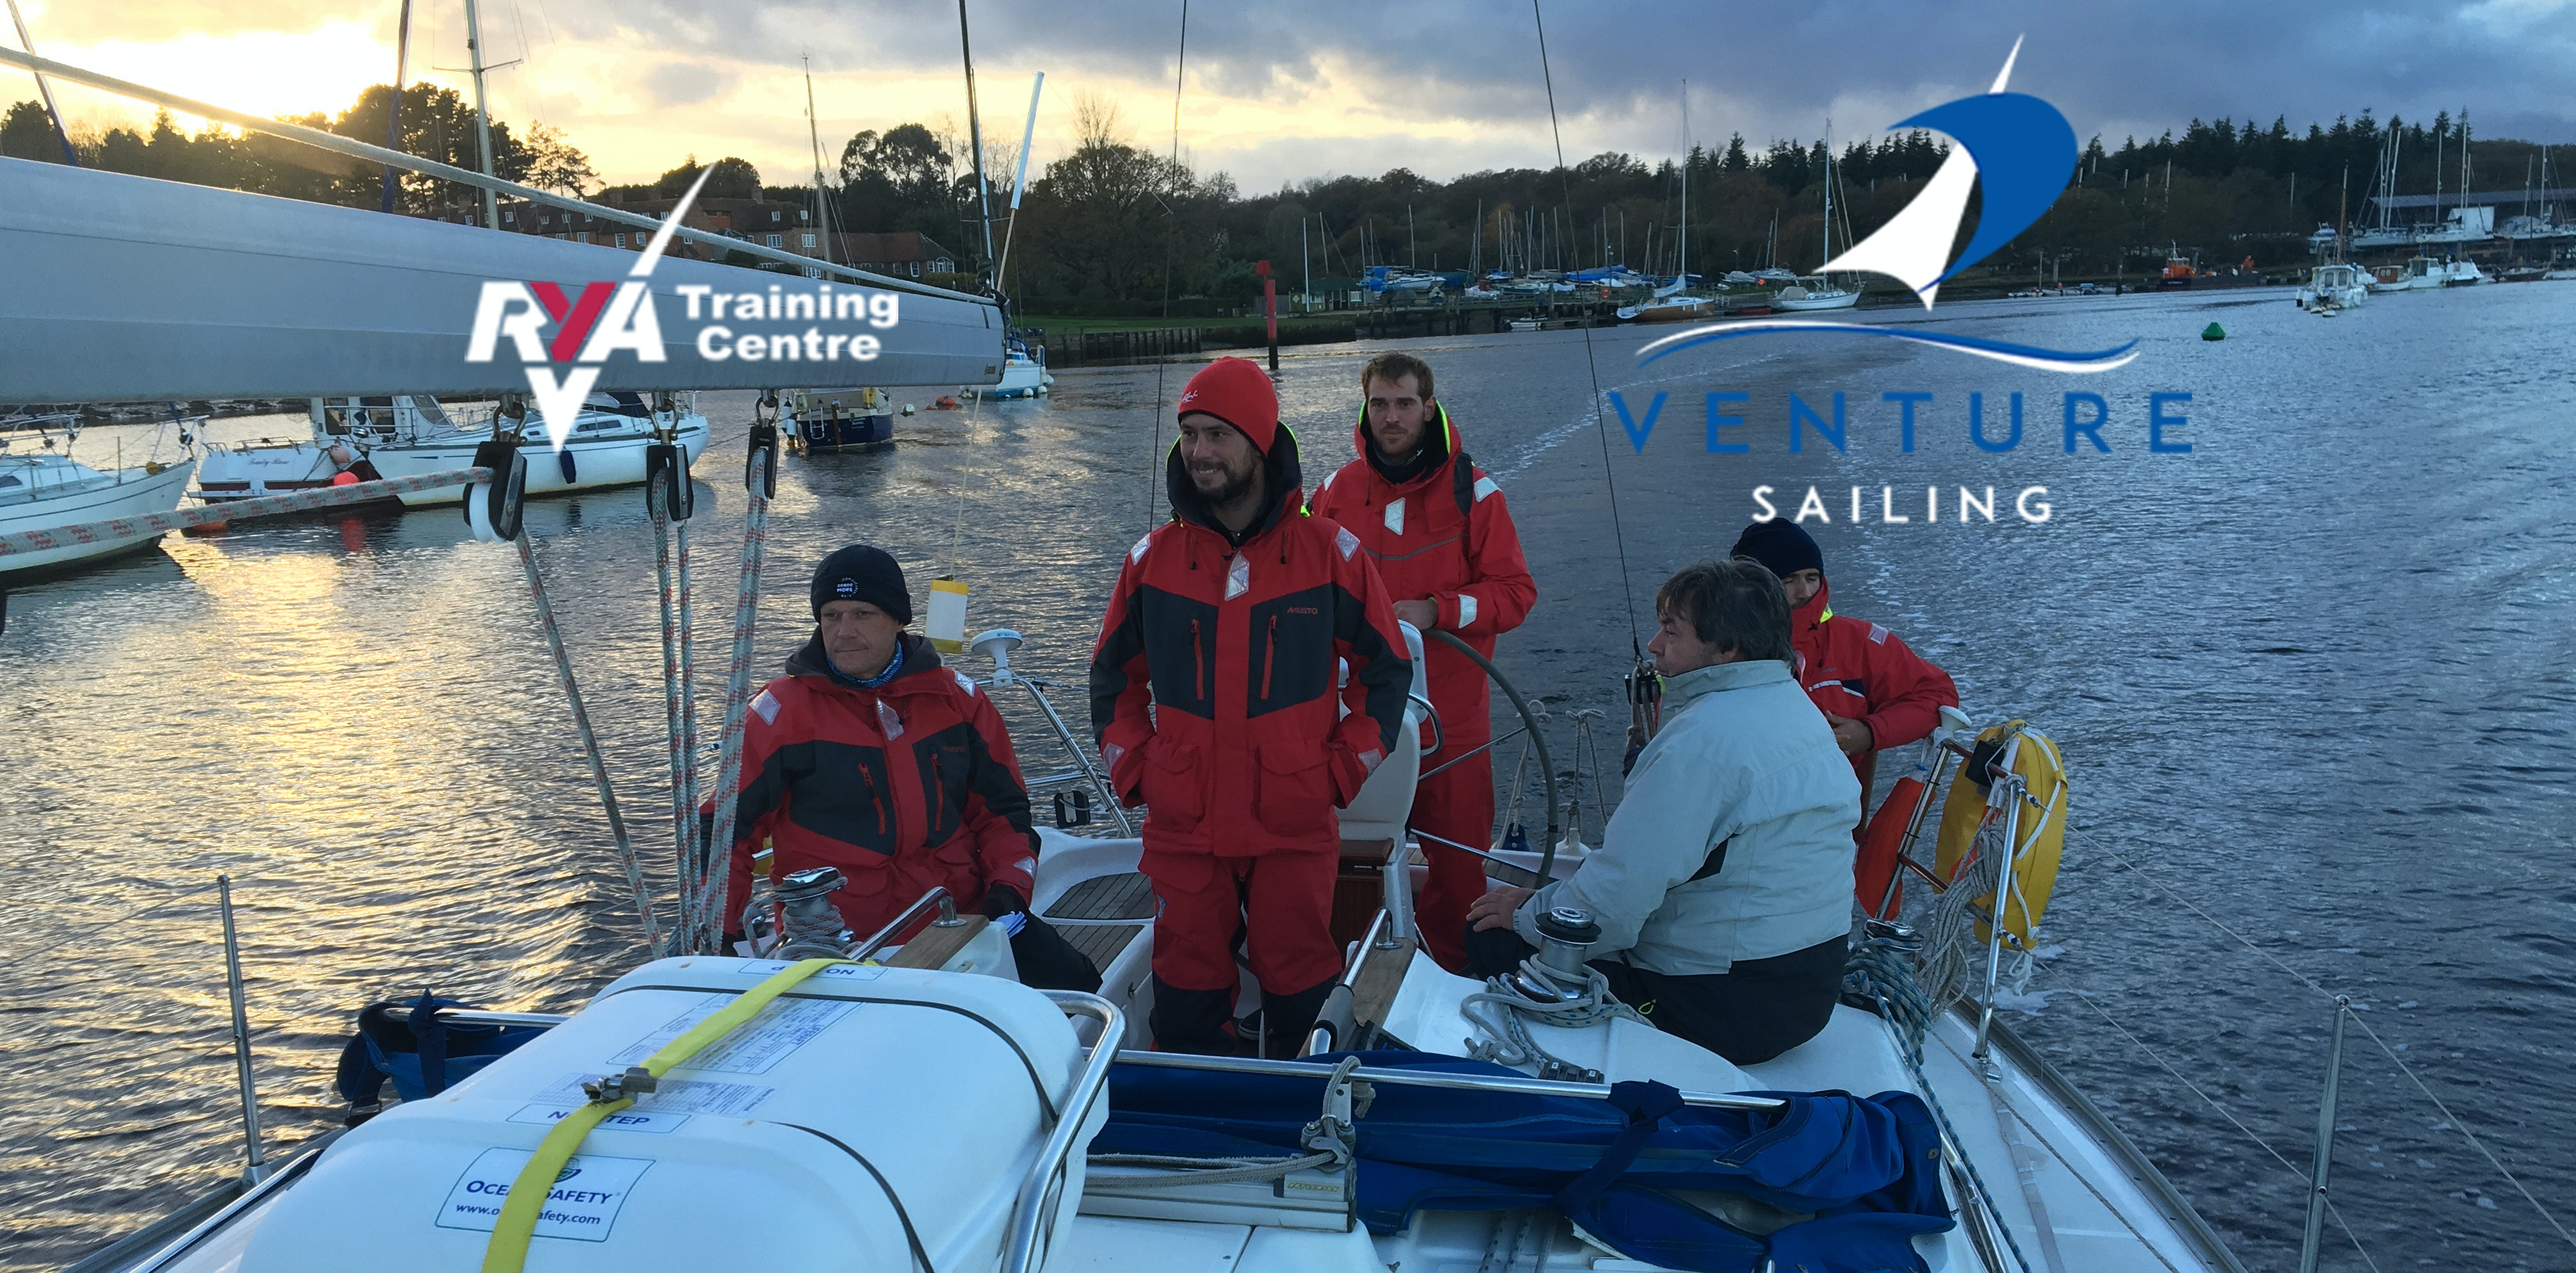 Weekend Sailing  Start Yachting  23rd August  2019 only £225